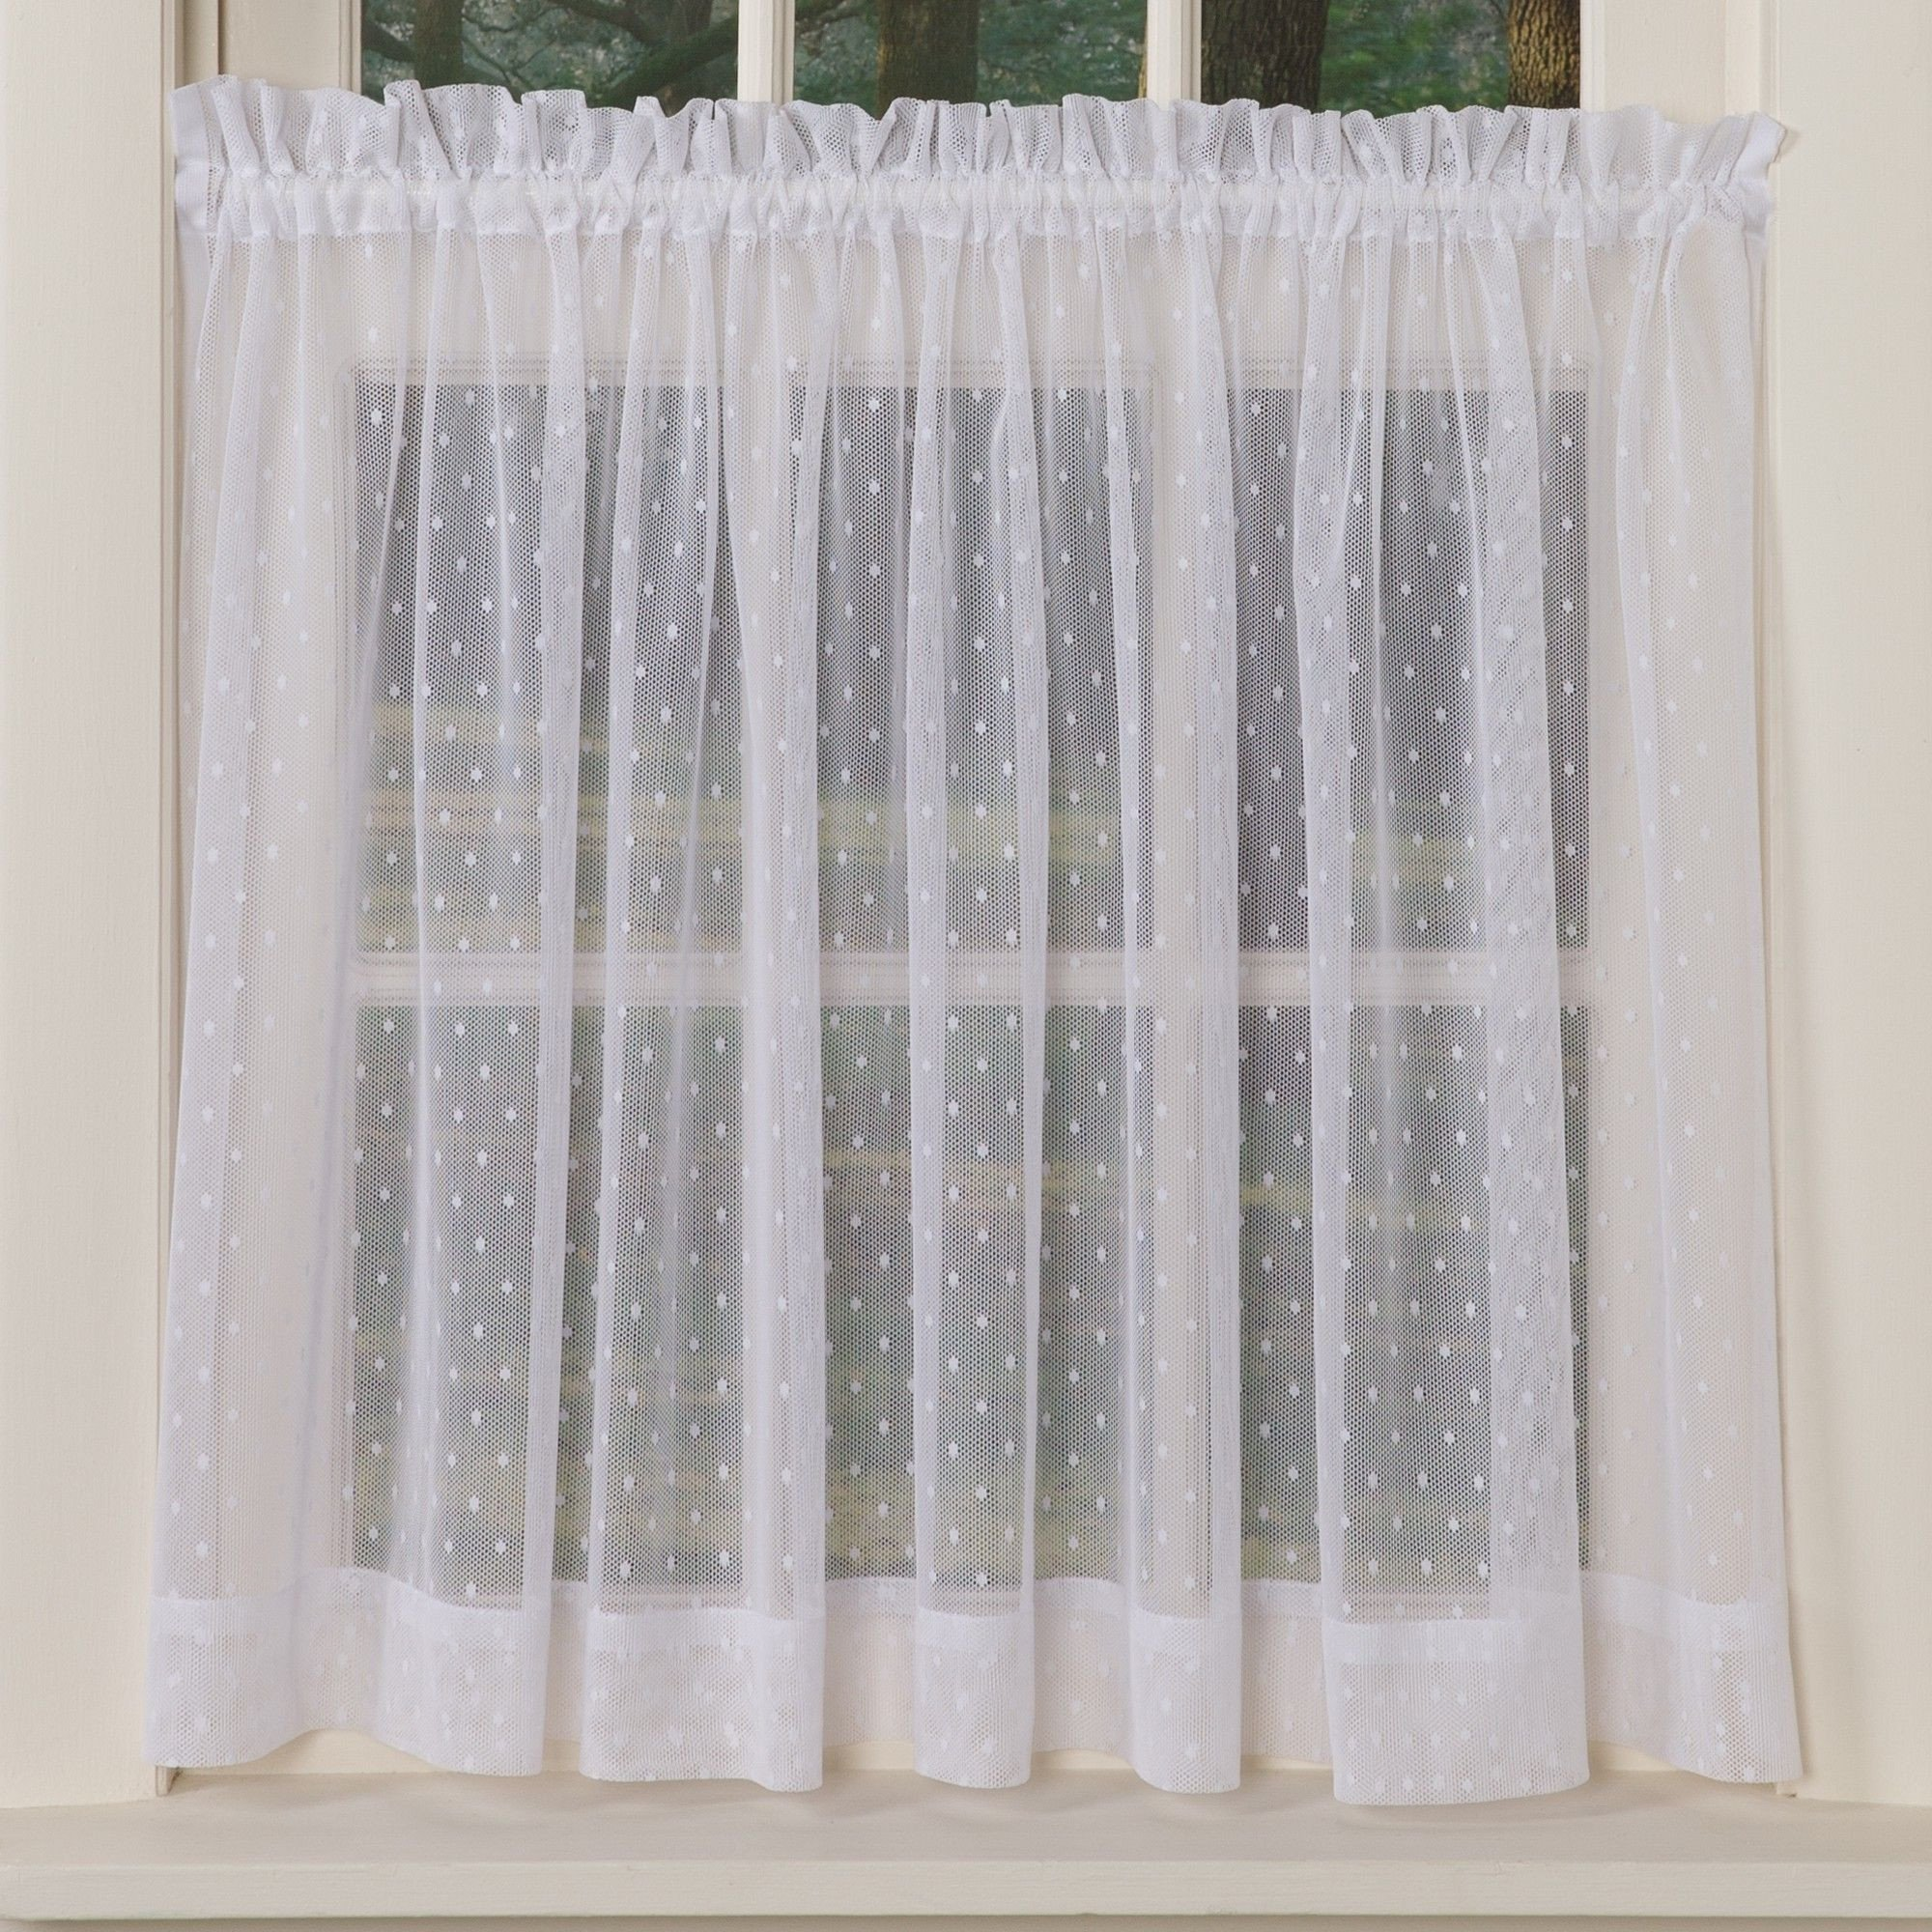 Short Curtains for Bedroom Windows Beautiful Swiss Dotted Sheer Curtains In 2020